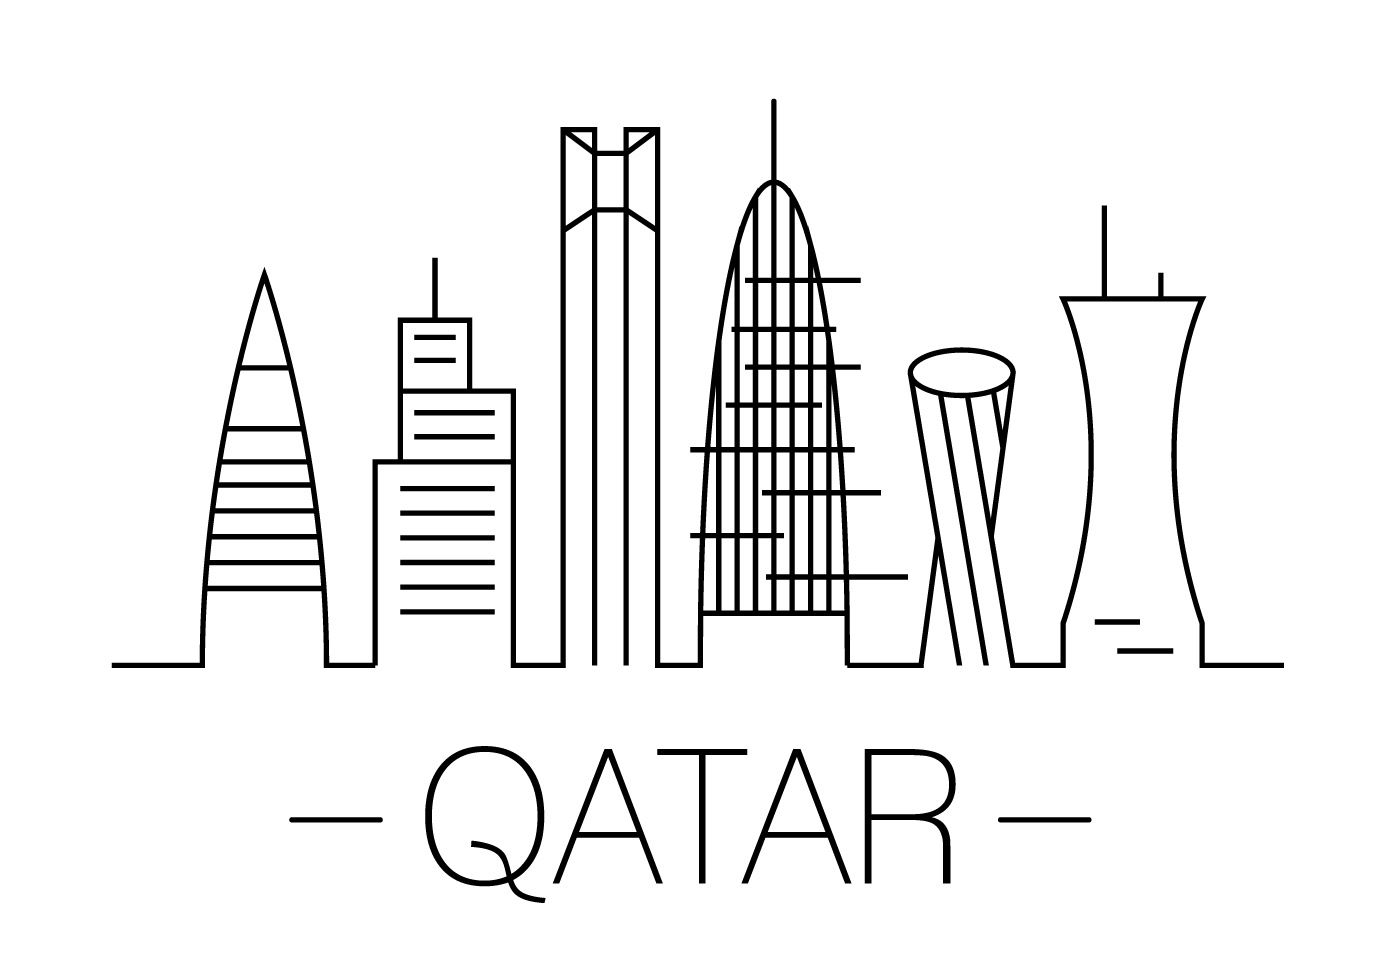 Qatar Coloring Pages Coloring Pages